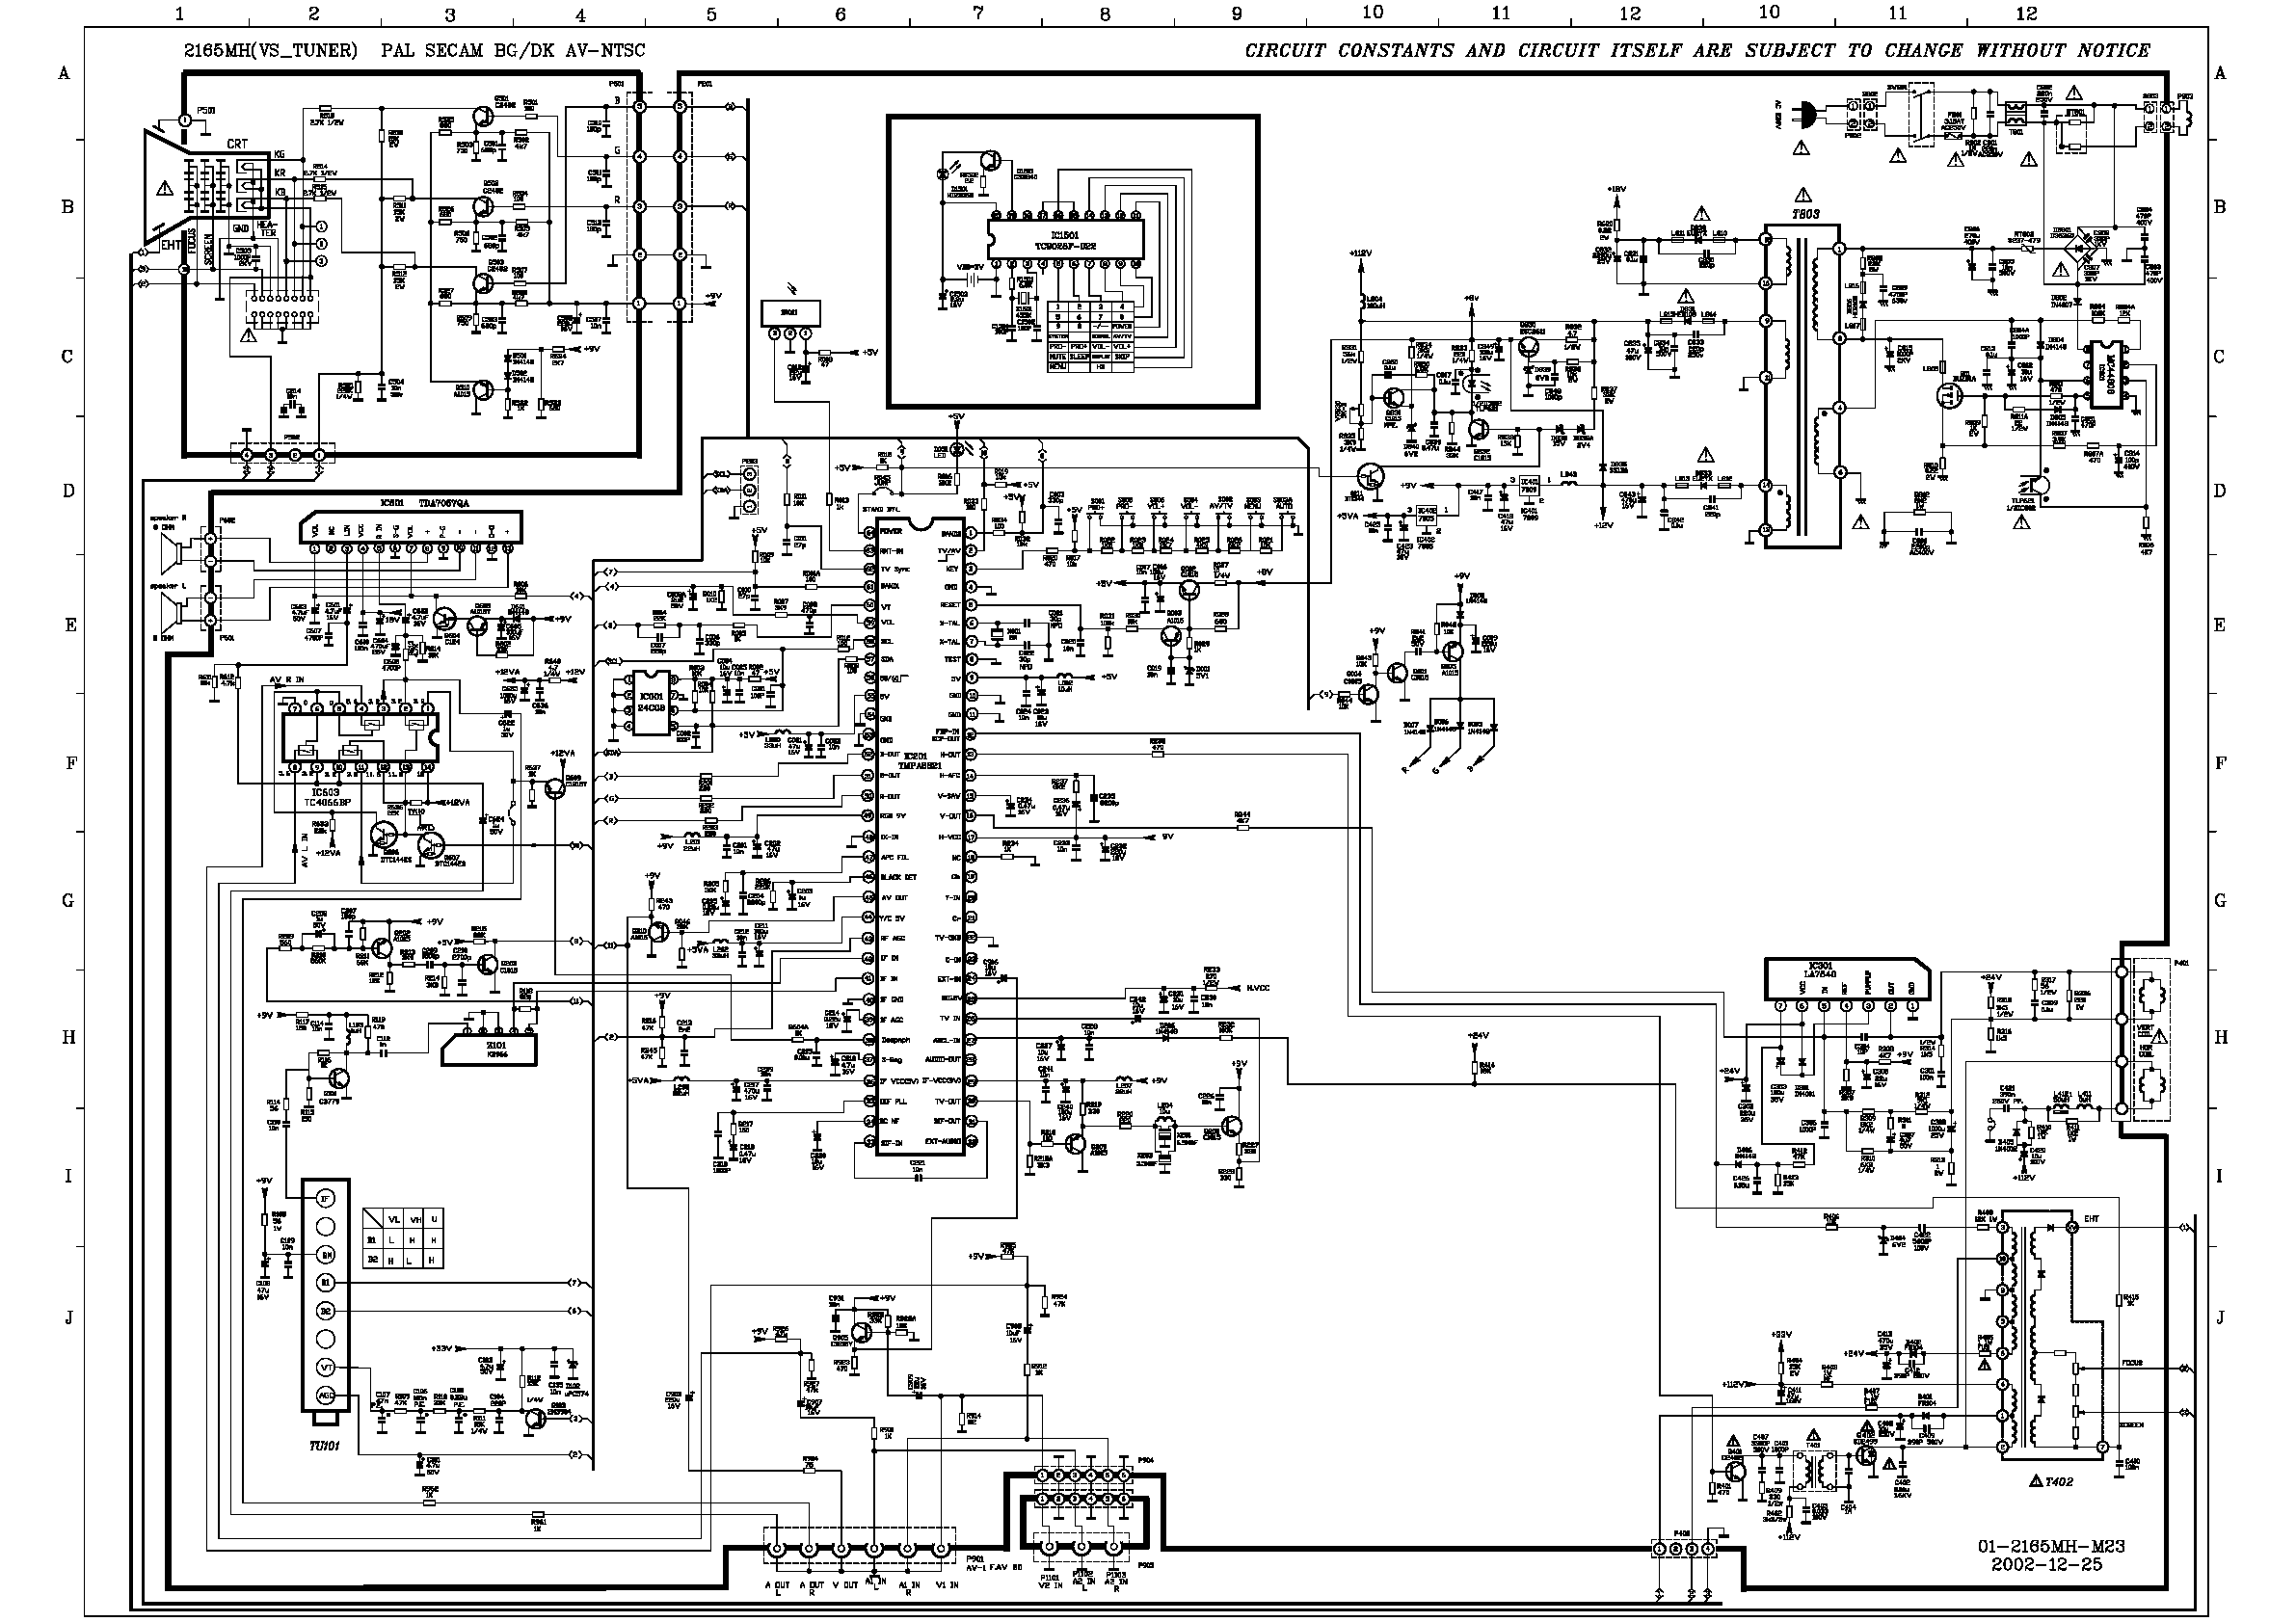 2wire 110v schematic wiring diagram